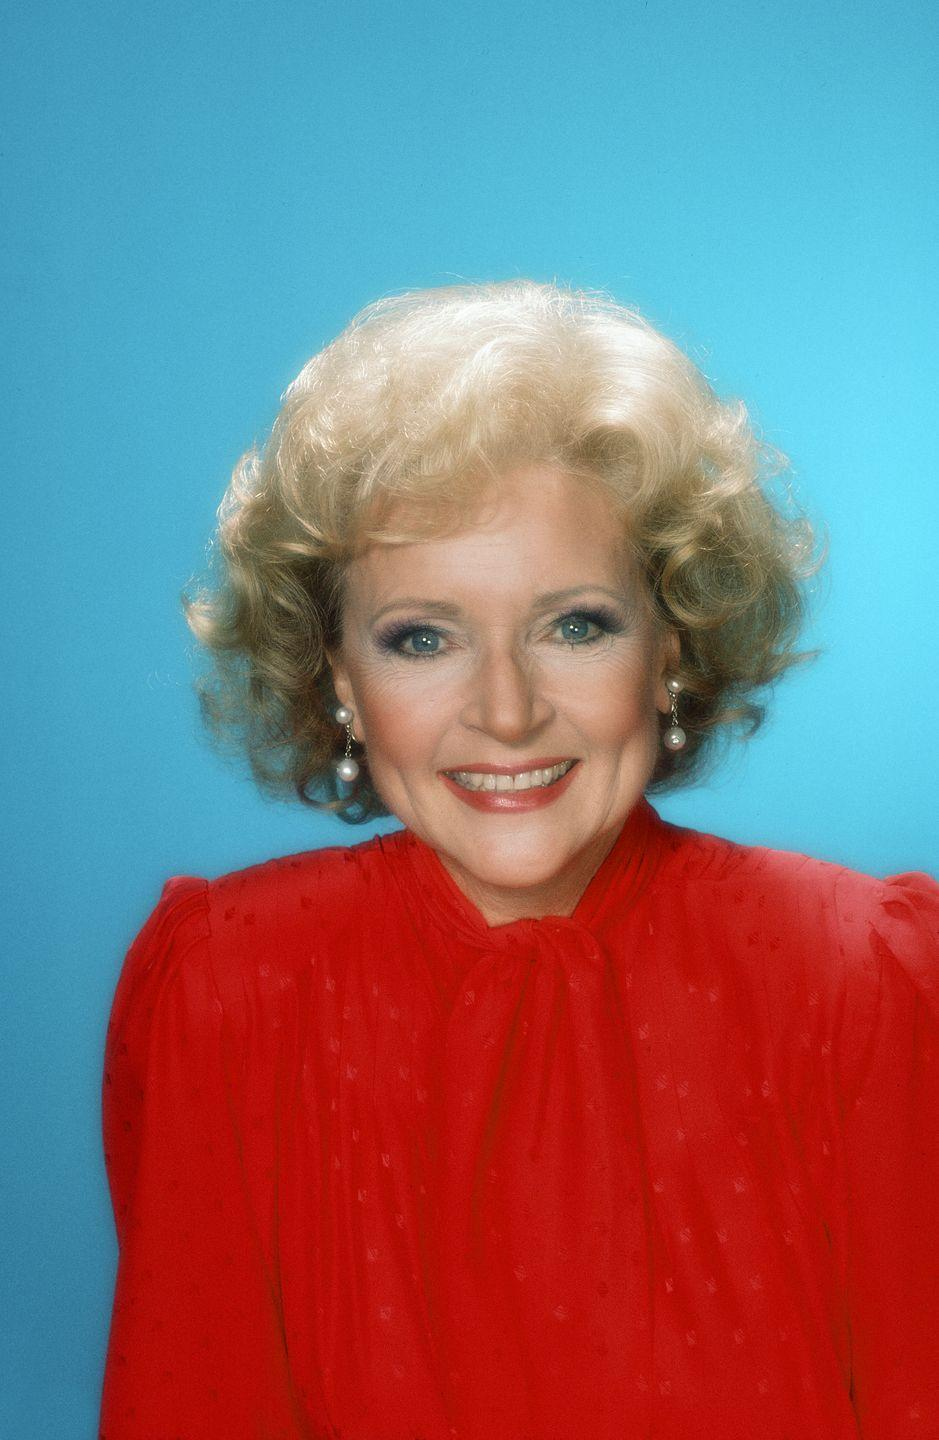 "<p>In 1983, White was the star of the NBC game show, <em>Just Men!</em>. That year, she became the first woman to win a Daytime Emmy Award in the category of Outstanding Game Show Host. She was <a href=""http://edition.cnn.com/2010/LIVING/worklife/02/23/mf.betty.white.why.love/"" rel=""nofollow noopener"" target=""_blank"" data-ylk=""slk:once known as"" class=""link rapid-noclick-resp"">once known as</a> the 'First Lady of Game Shows.' </p>"